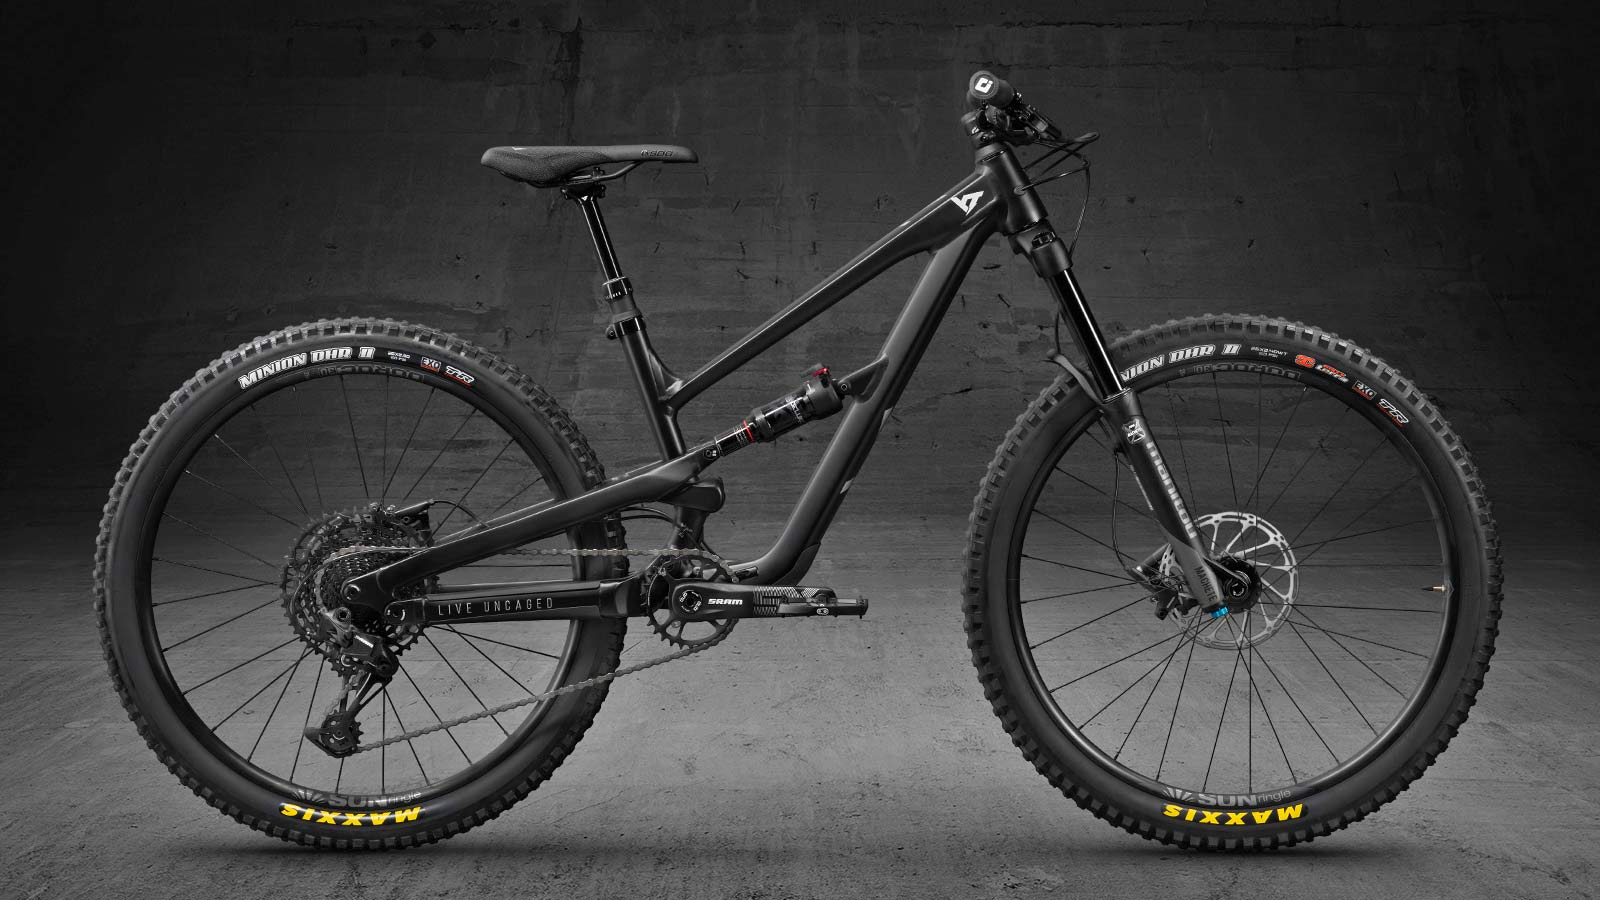 YT Jeffsy Primus youth MTB trail bike, alloy aluminum, all-mountain enduro trail bikes, 24in 130mm, 26in 140mm